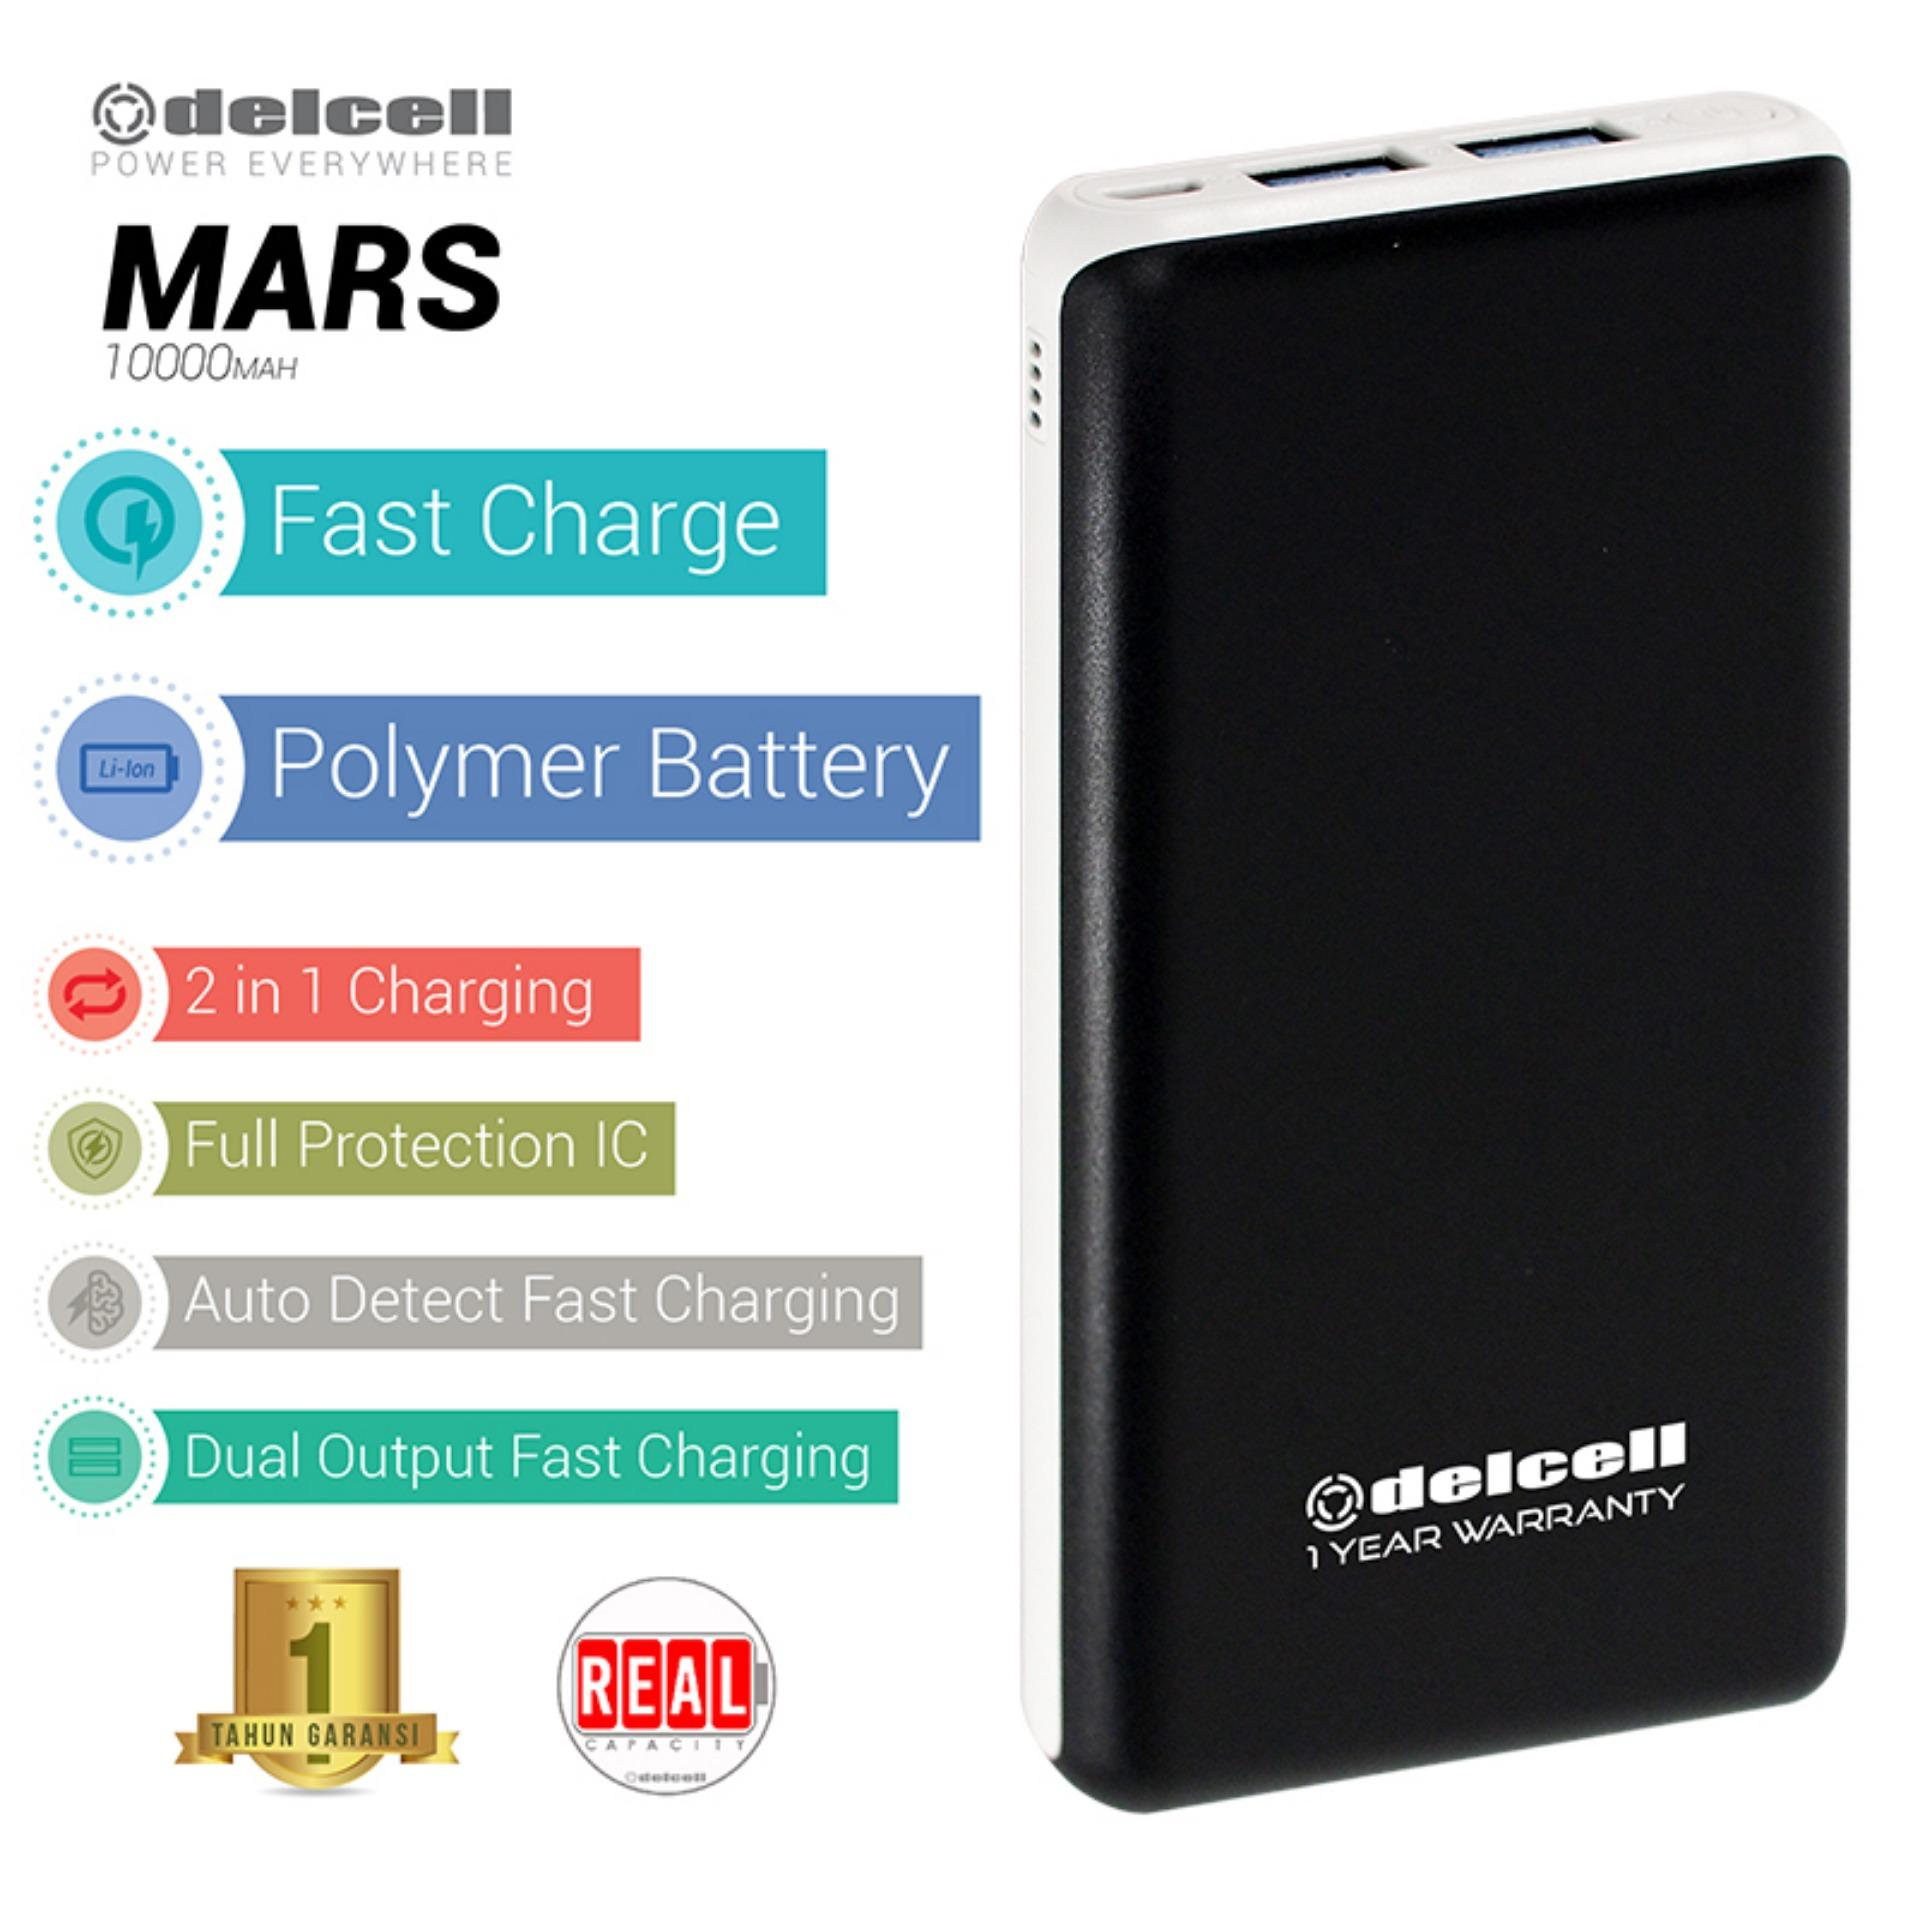 Delcell 10000mAh Powerbank MARS Real Capacity Fast Charging Slim Powerbank Polymer Battery Dual Output Garansi Resmi 1 Tahun  Power Bank Murah Berkualitas -  Black